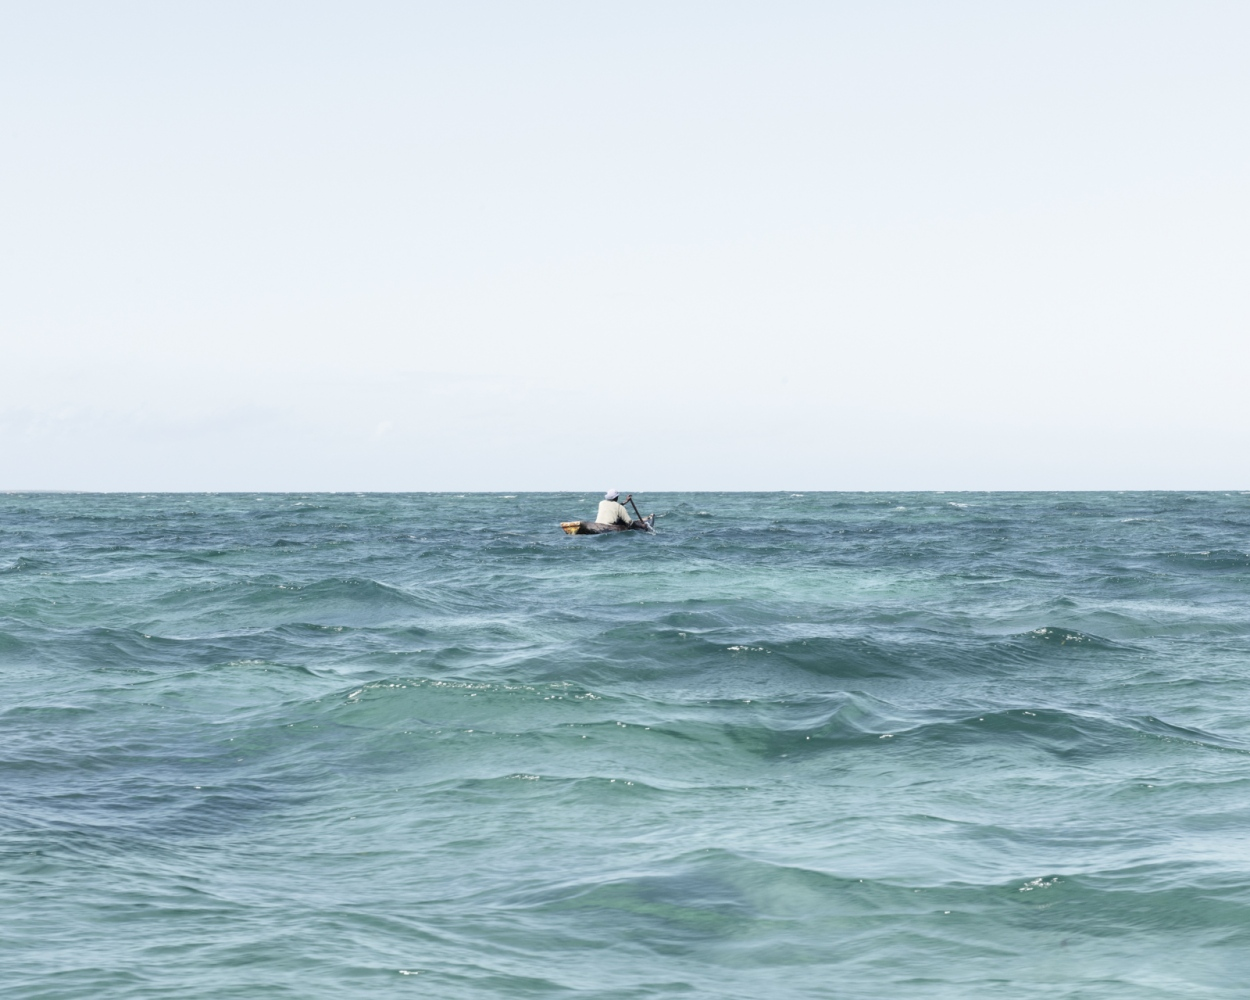 A divers goes home after retrieving some Sea Cucumbers.